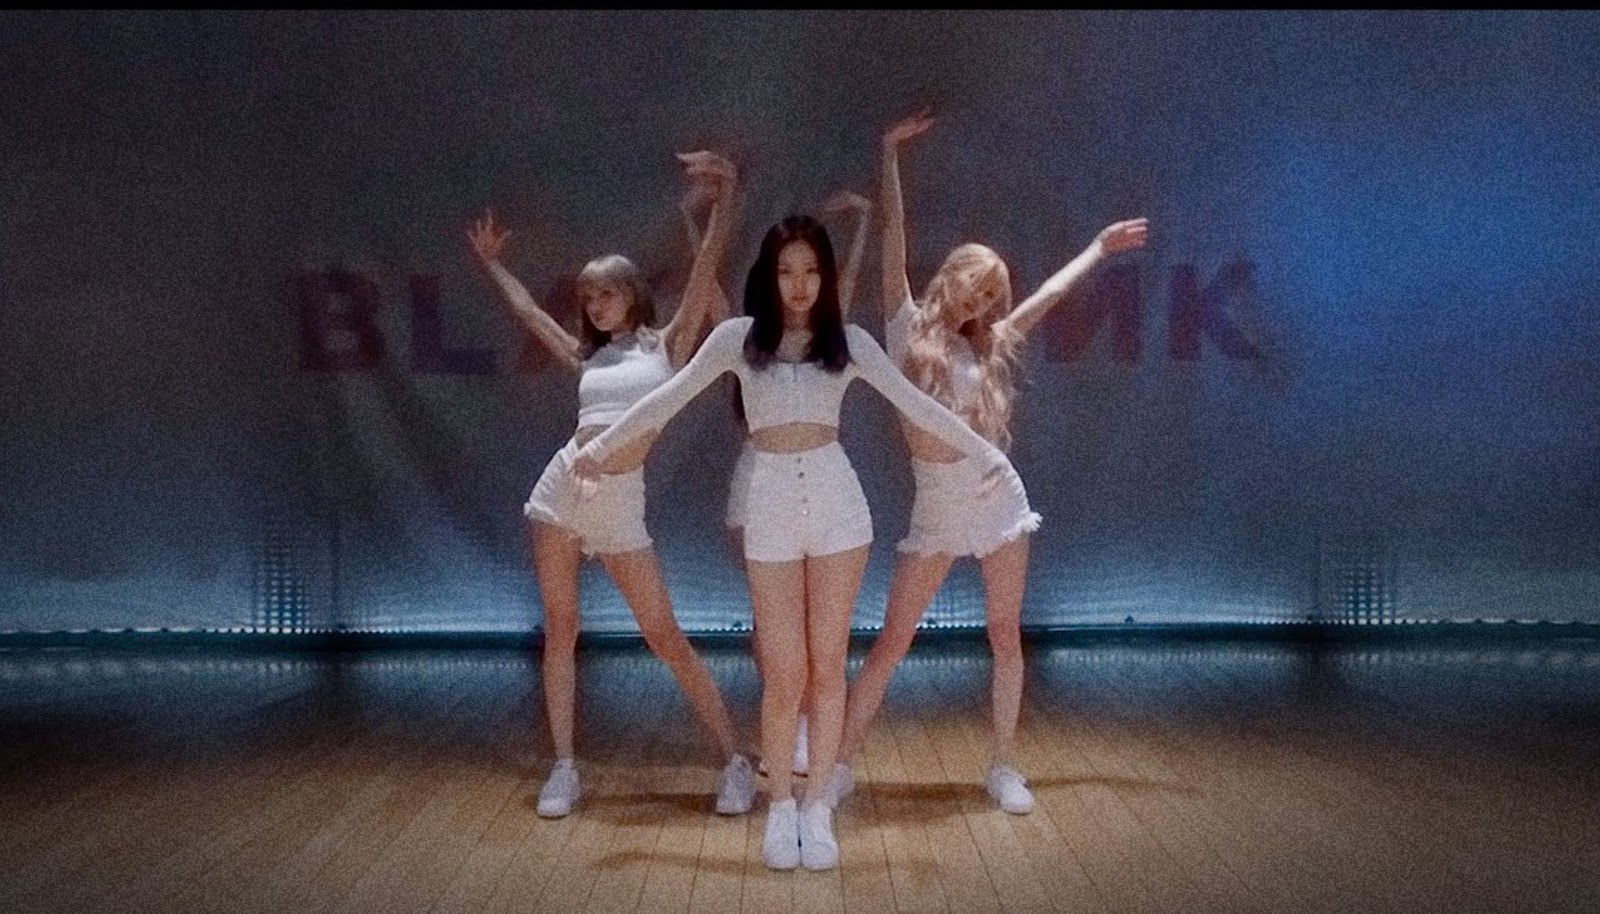 BLACKPINK – 'Don't Know What To Do' DANCE PRACTICE VIDEO (MOVING VER.)